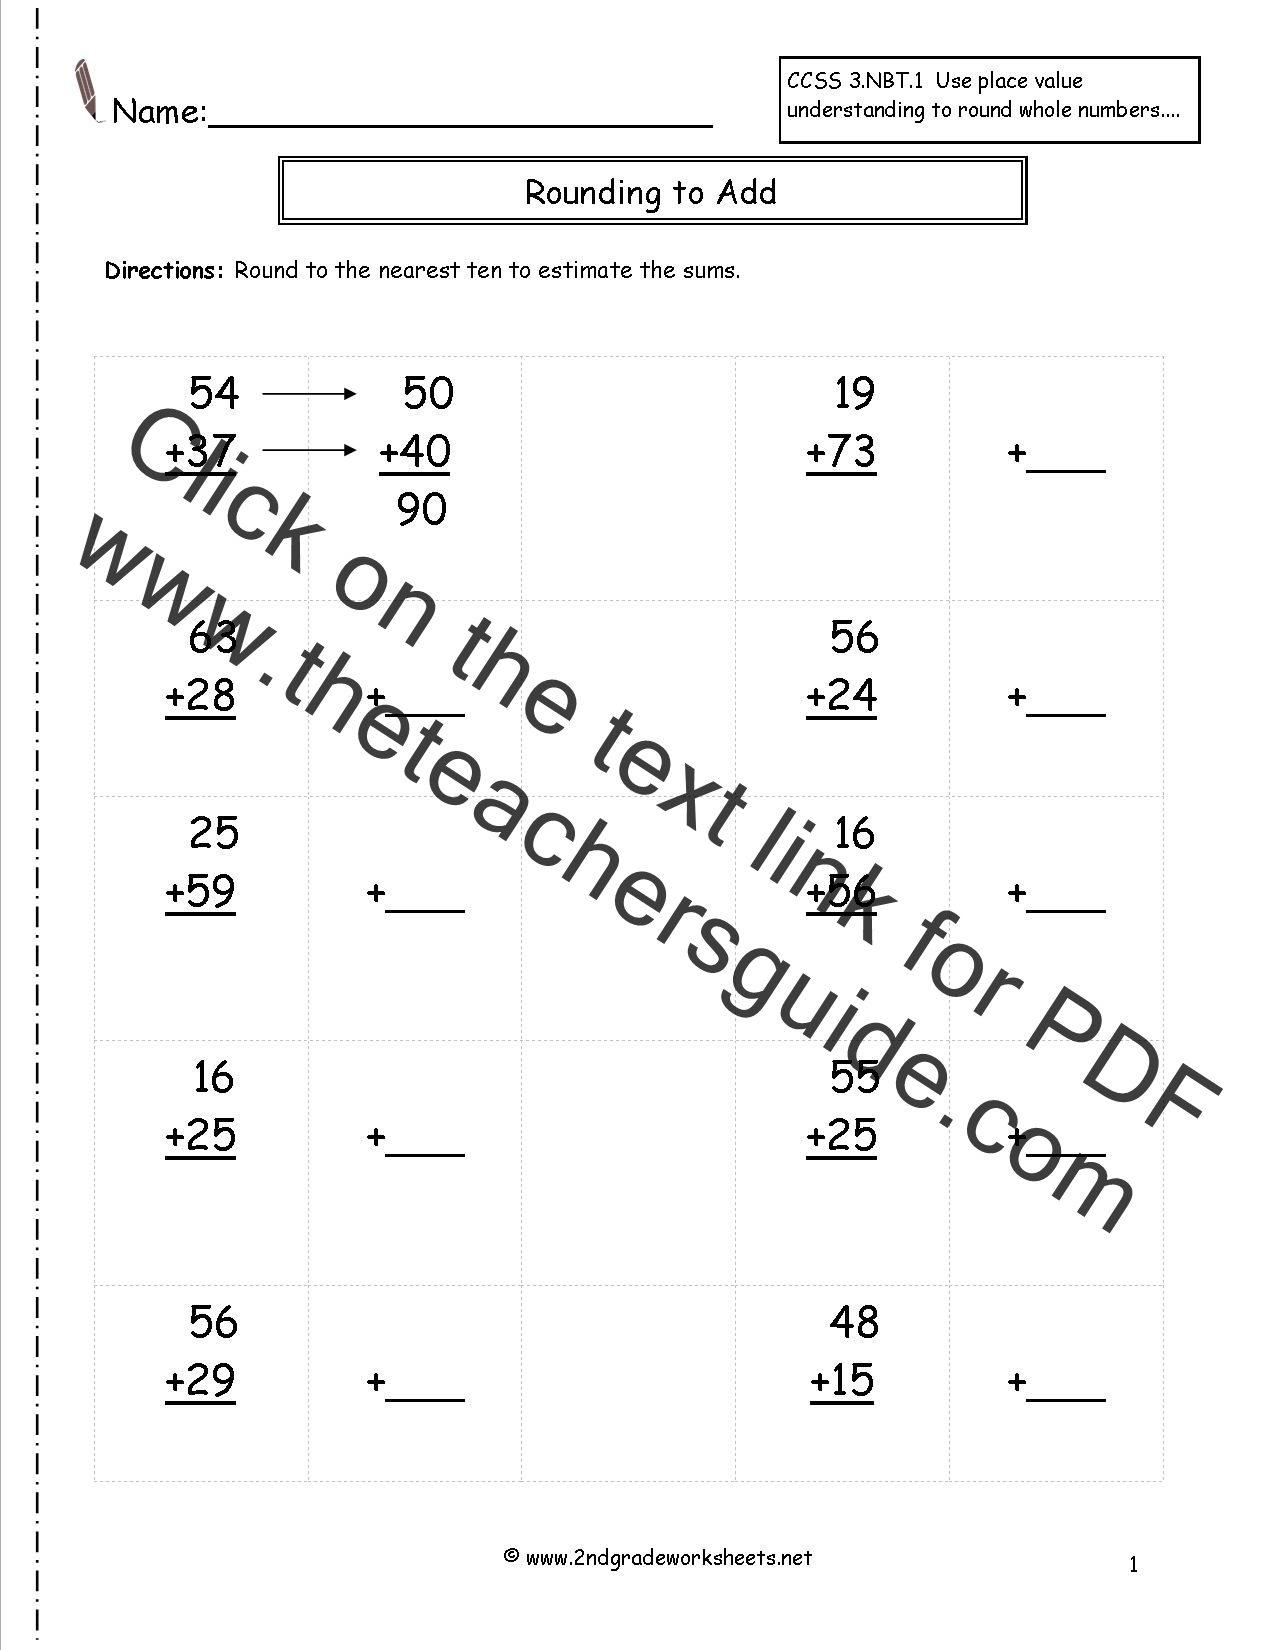 Worksheets Rounding To The Nearest Ten Worksheet rounding whole numbers worksheets to estimate the sums 2 3